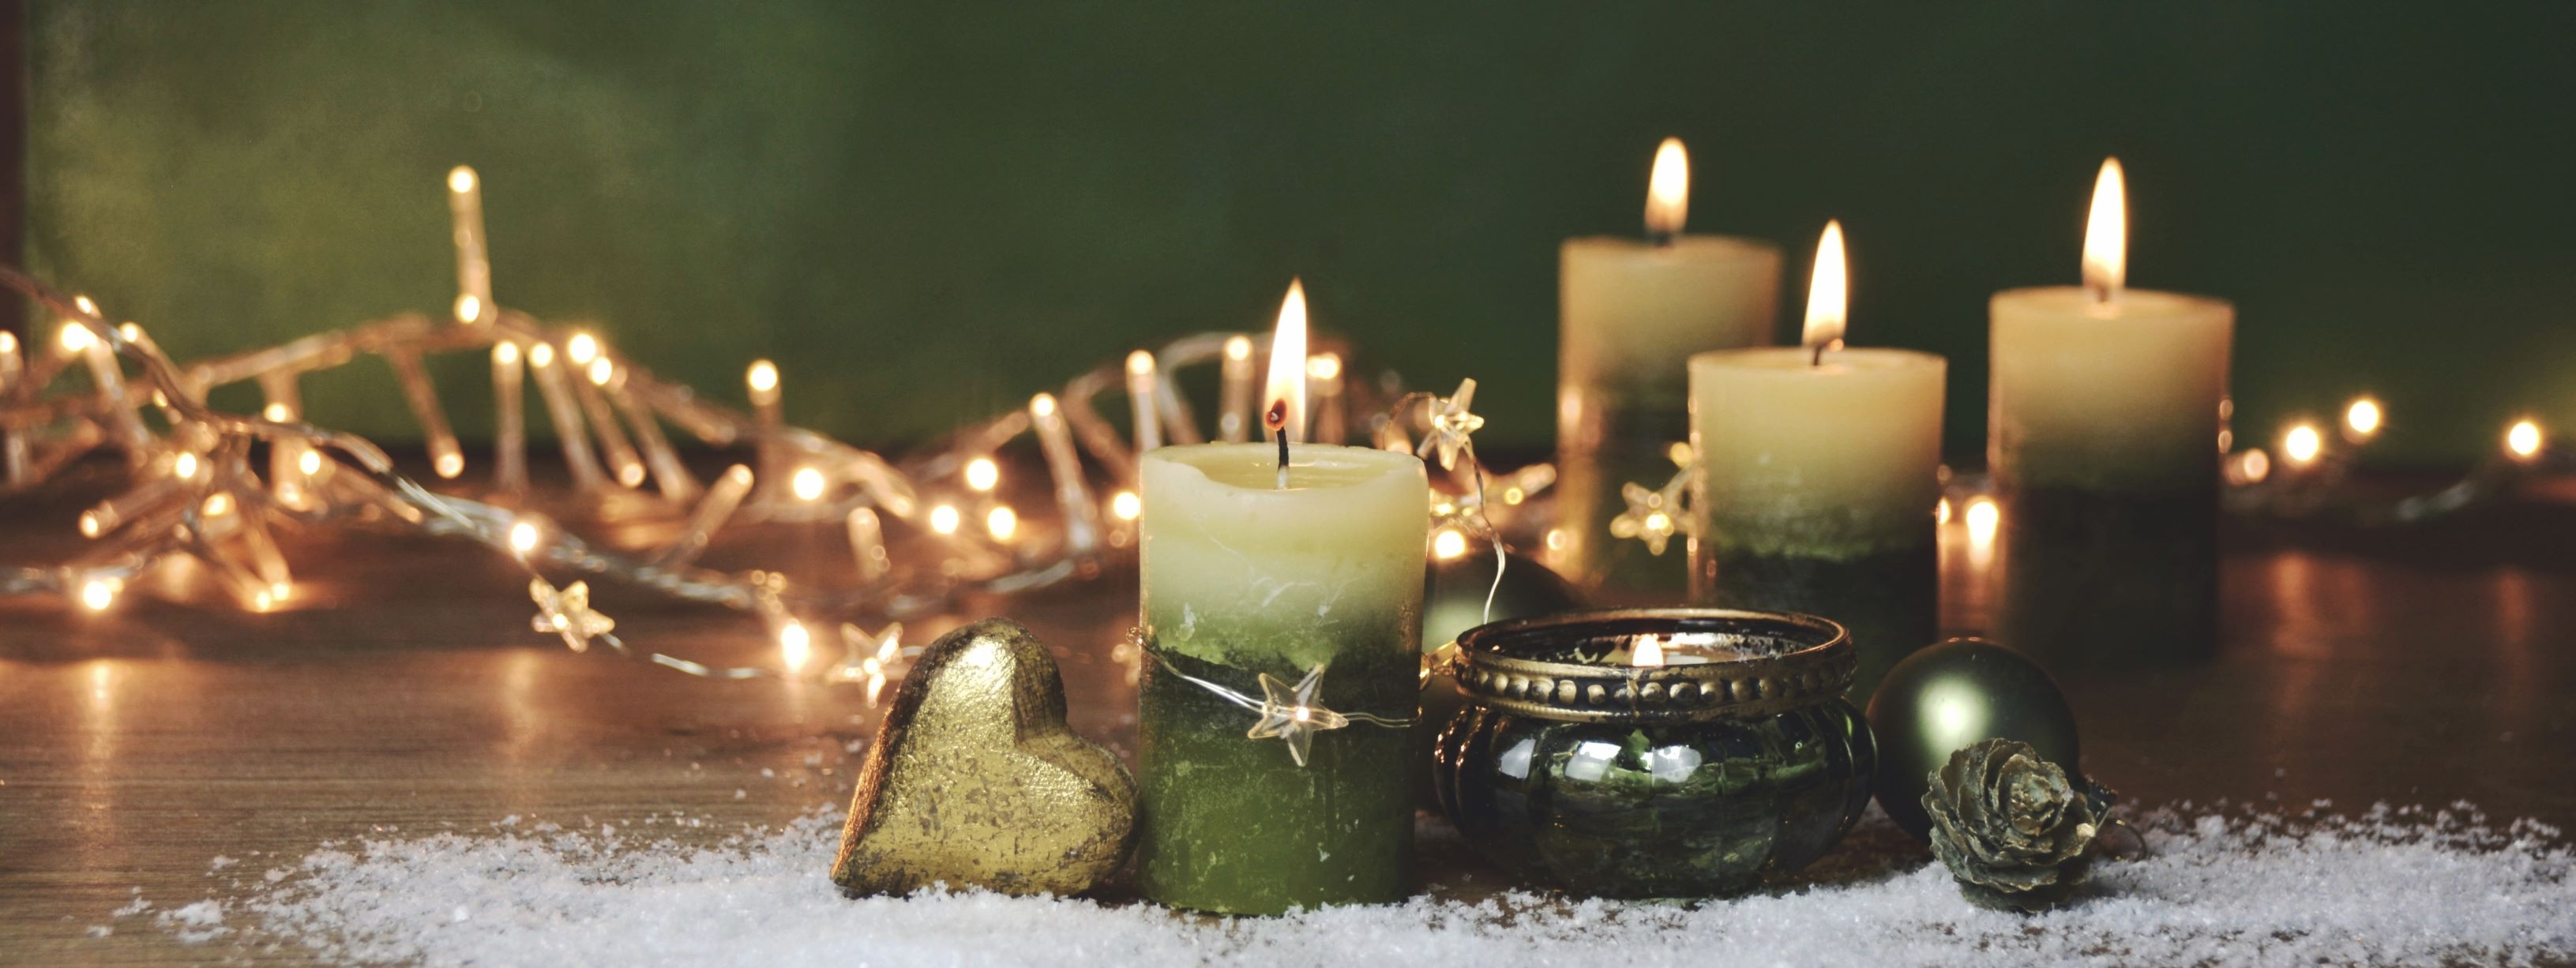 Candles, Tealights & Holders